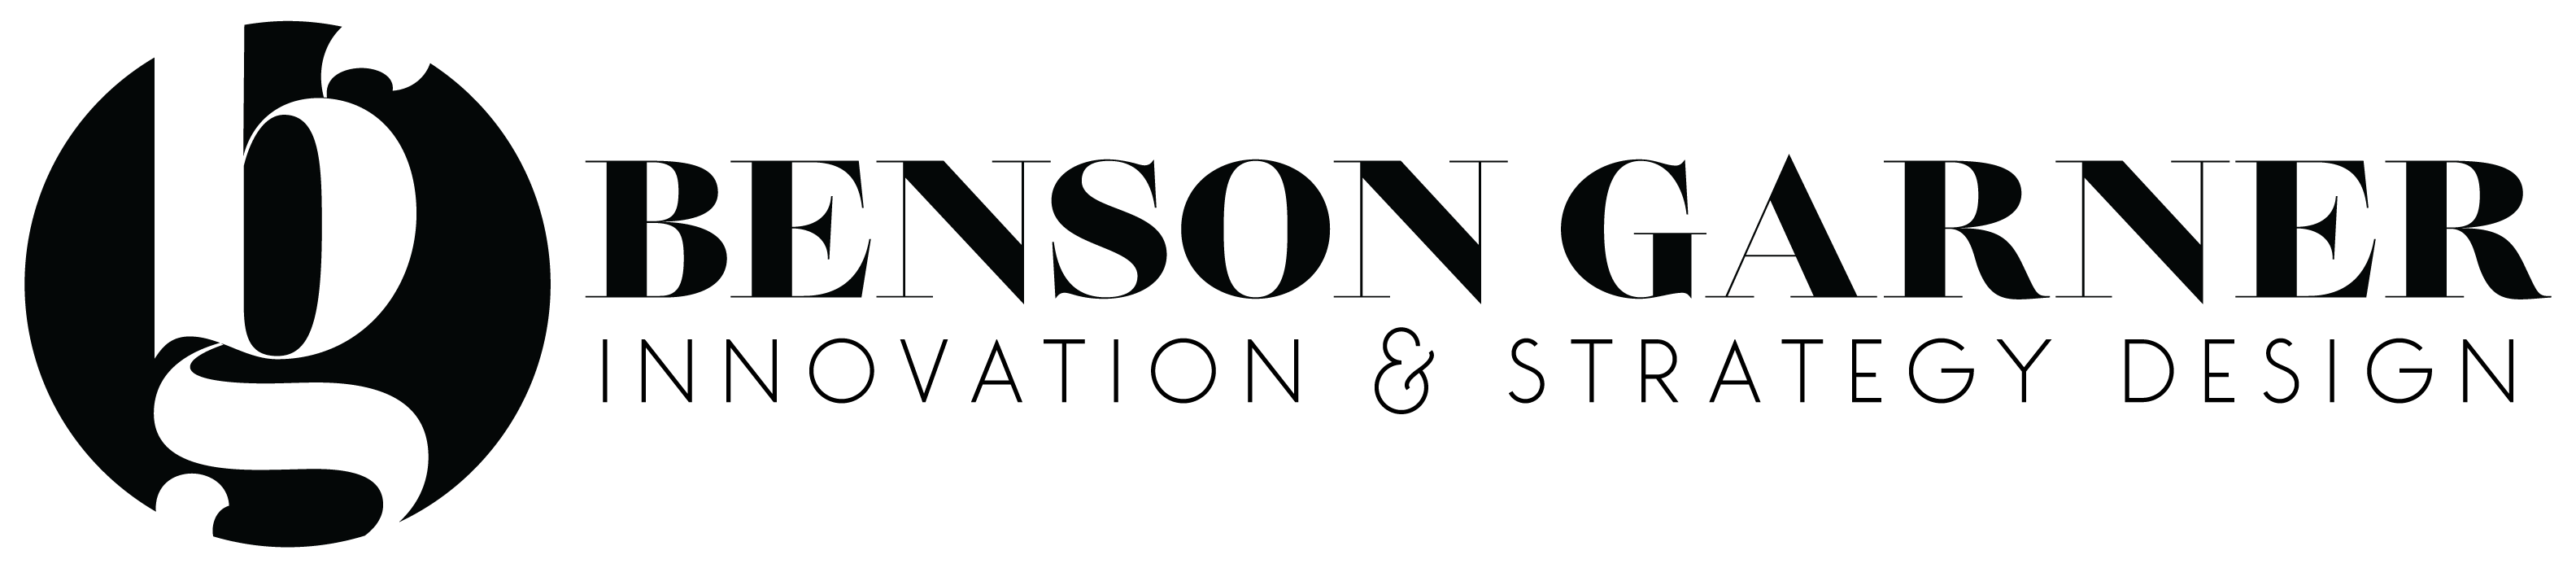 Benson Garner Innovation & Strategy Design